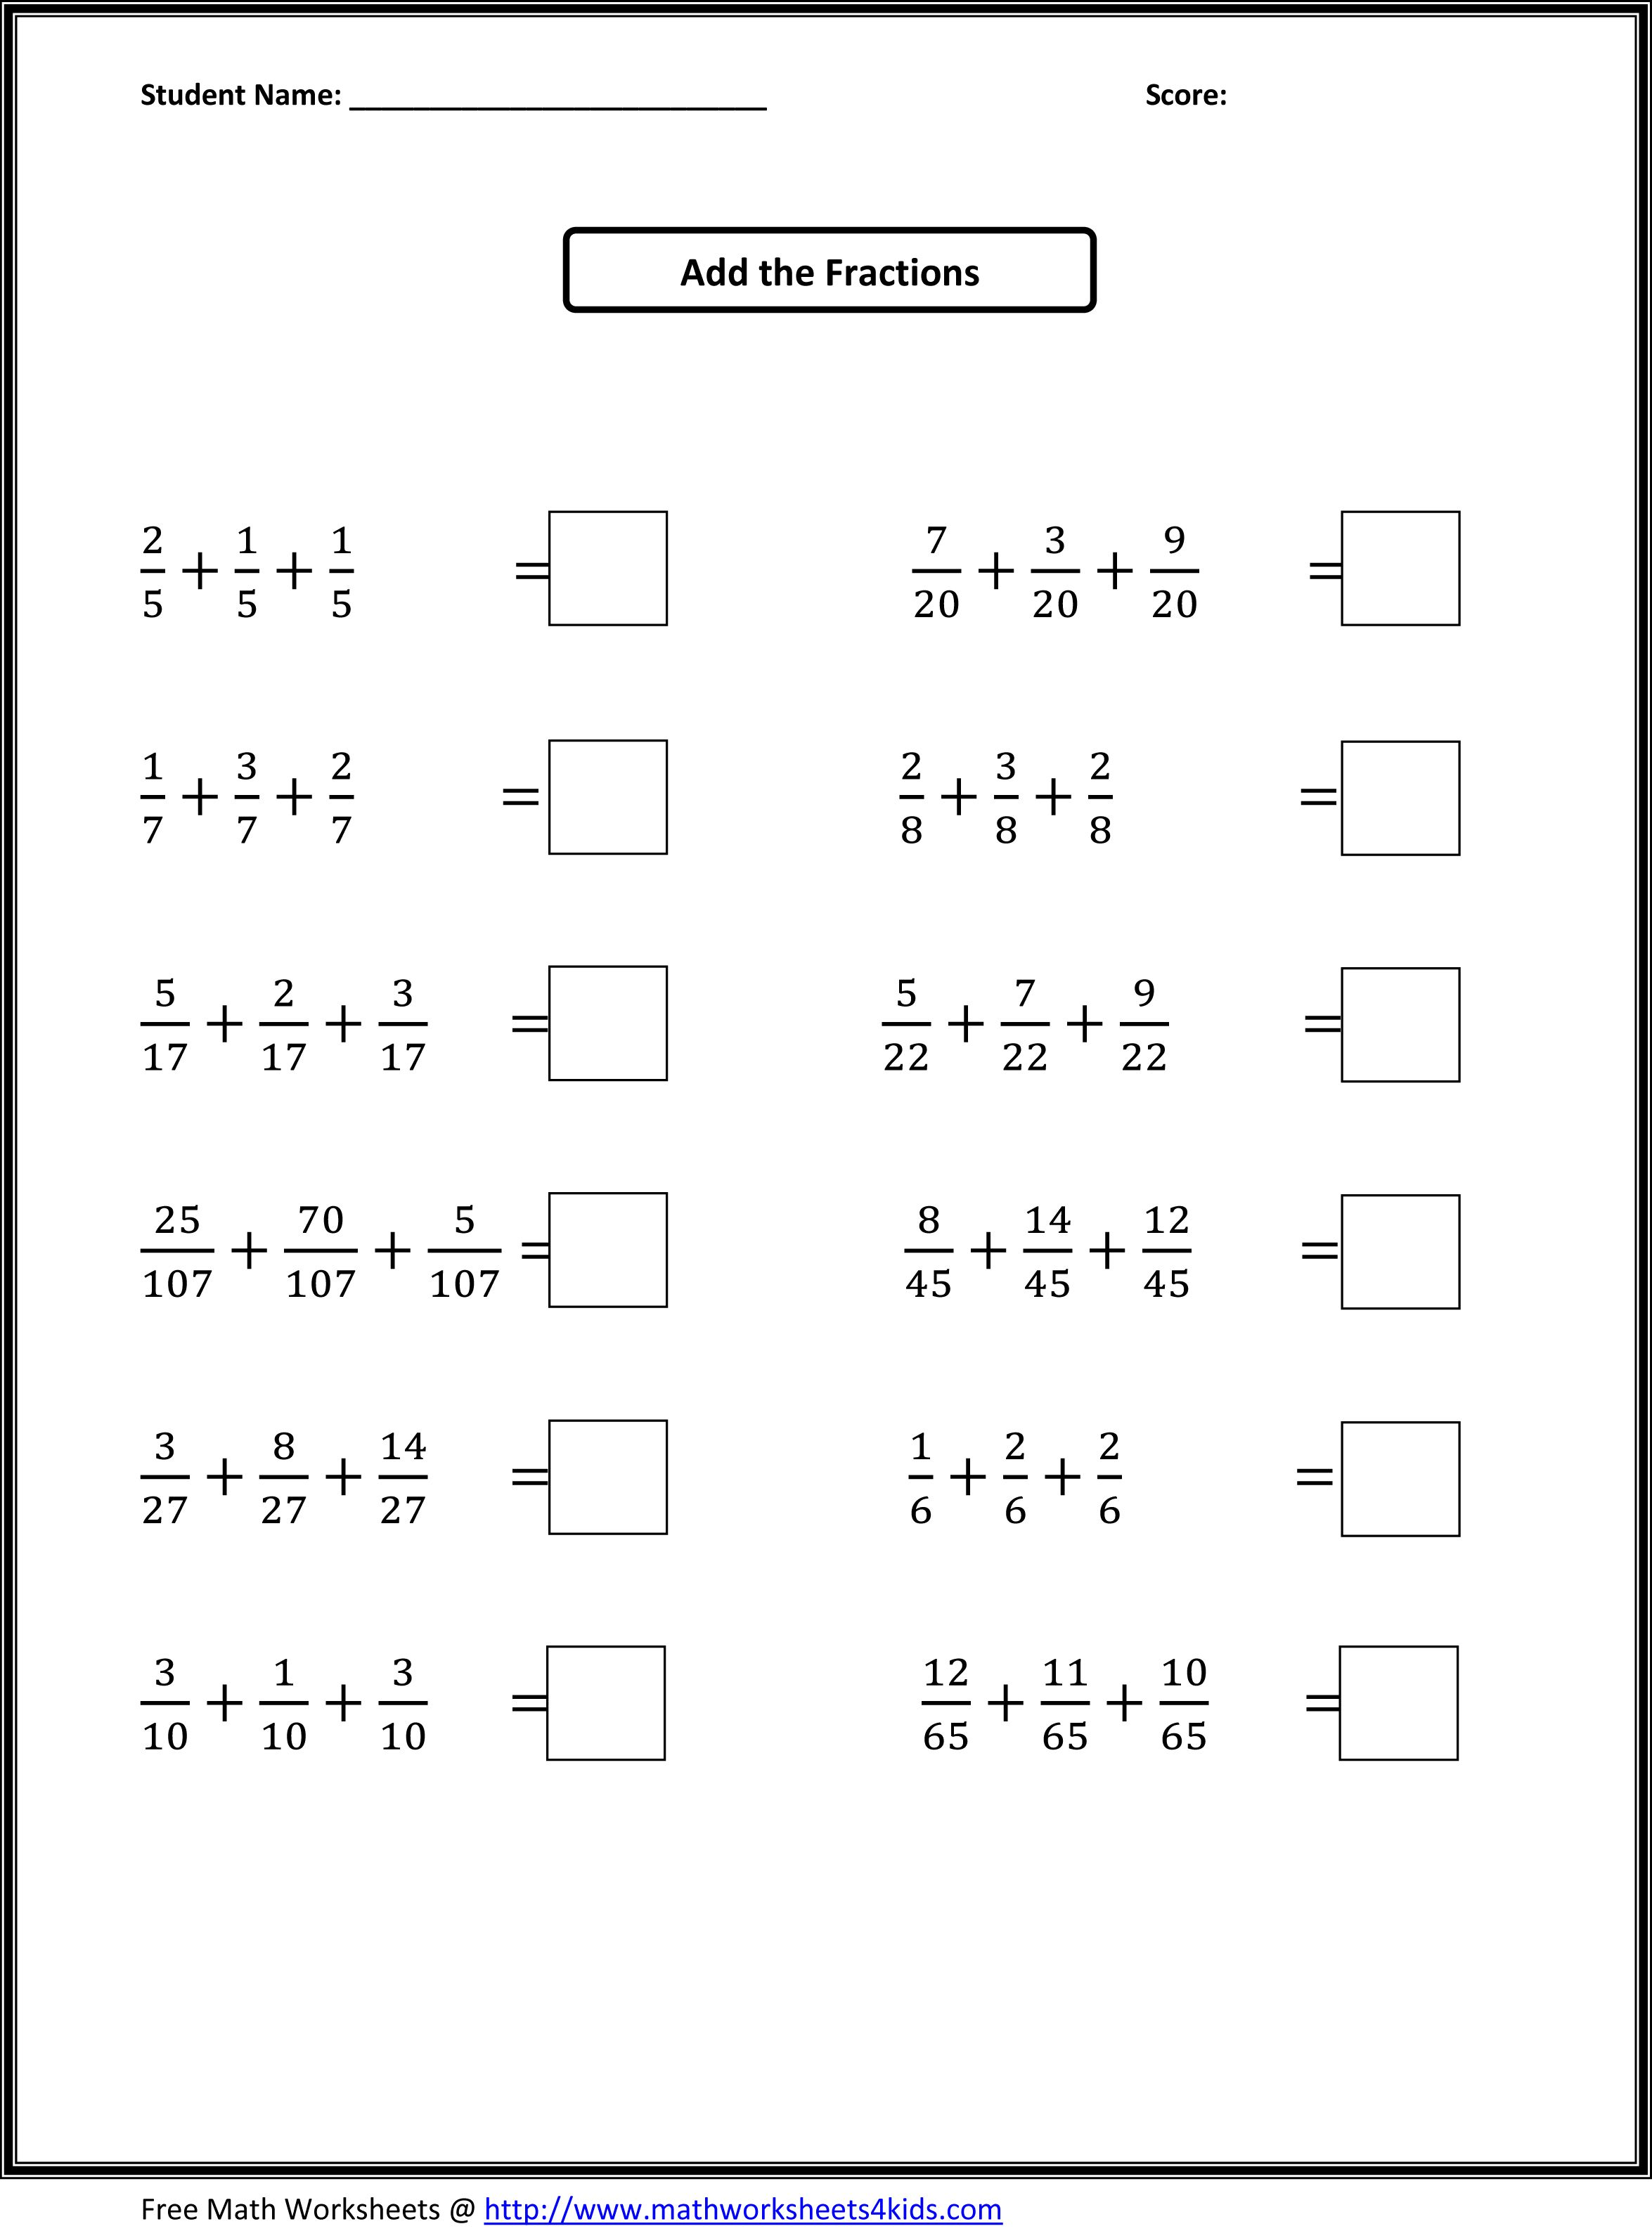 Worksheets for all early ed grades All topics of math – Comparing Fractions Worksheet 4th Grade